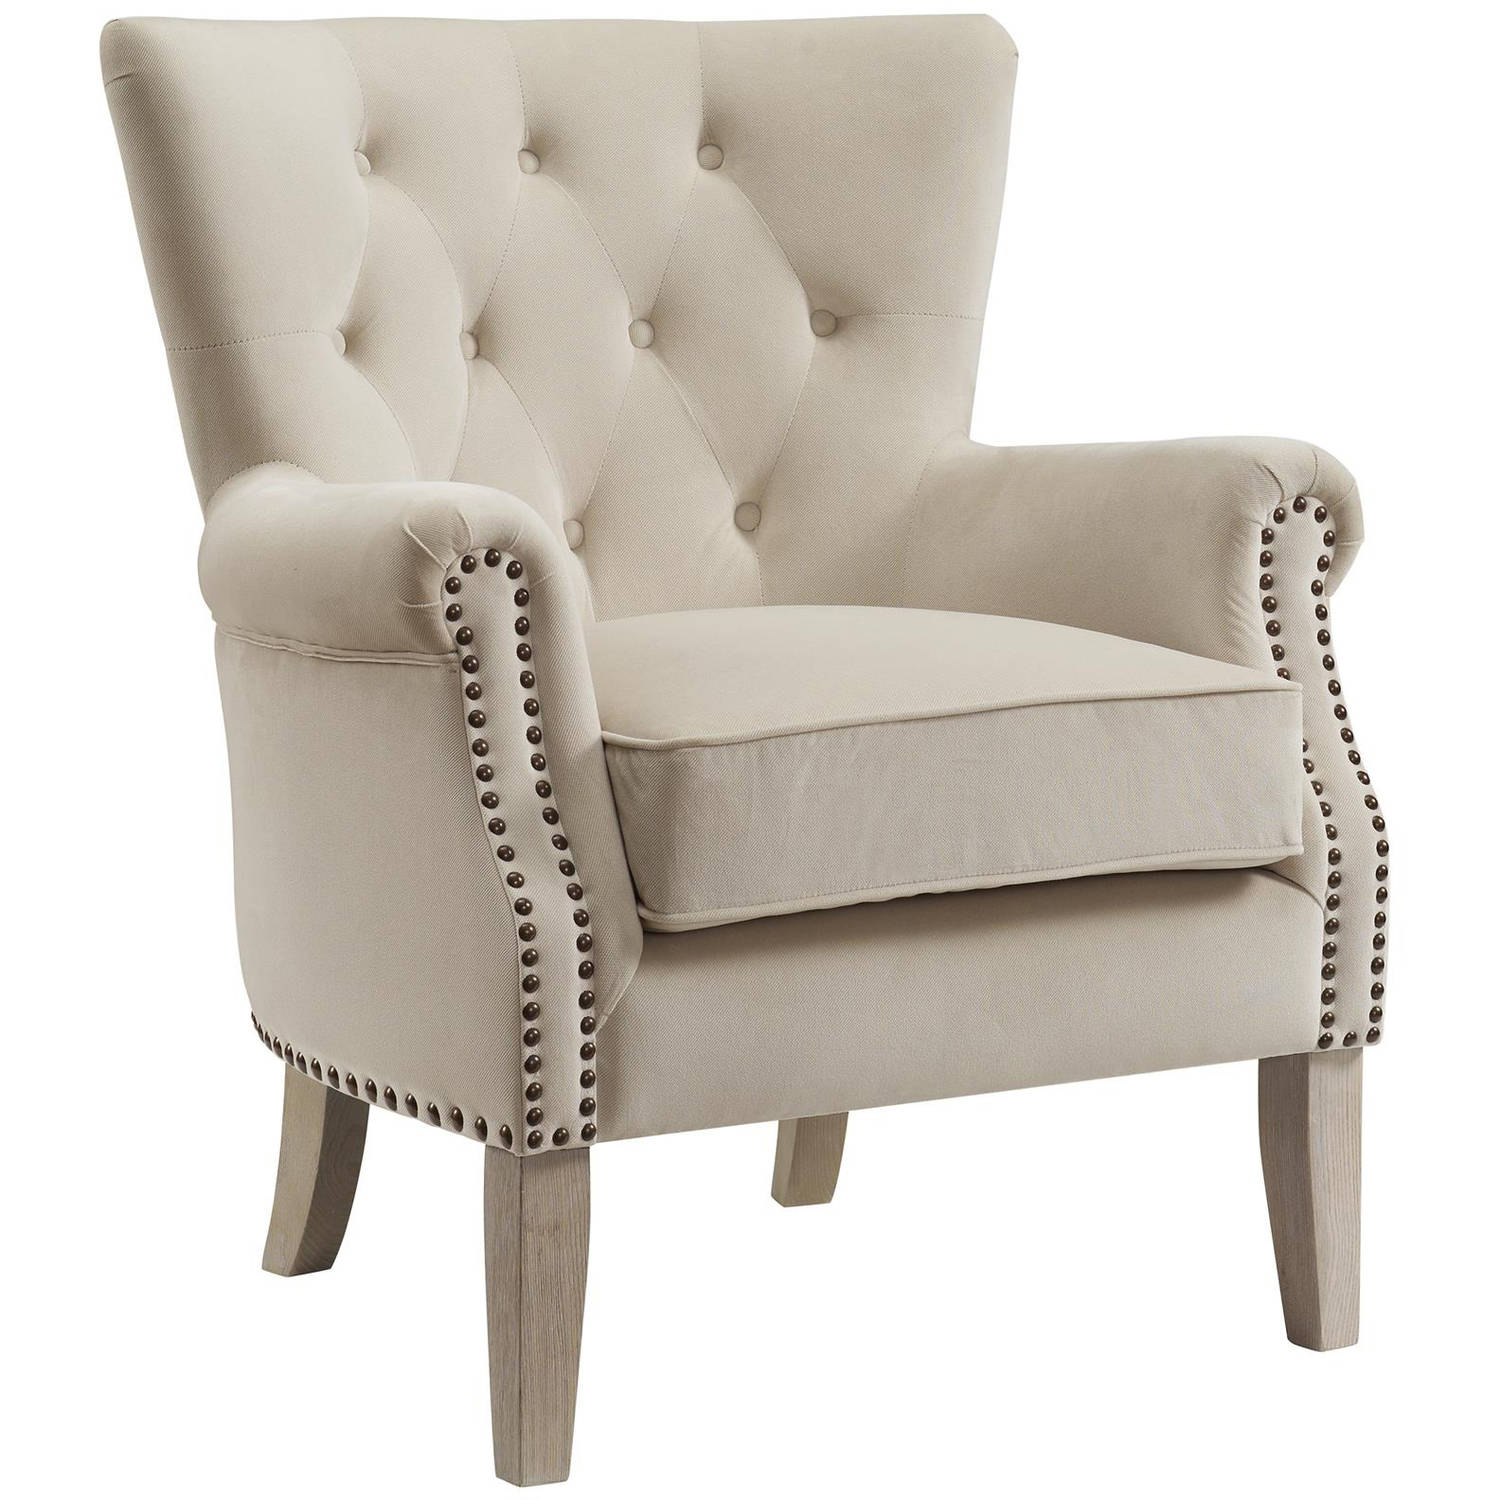 Chair Furniture living room furniture